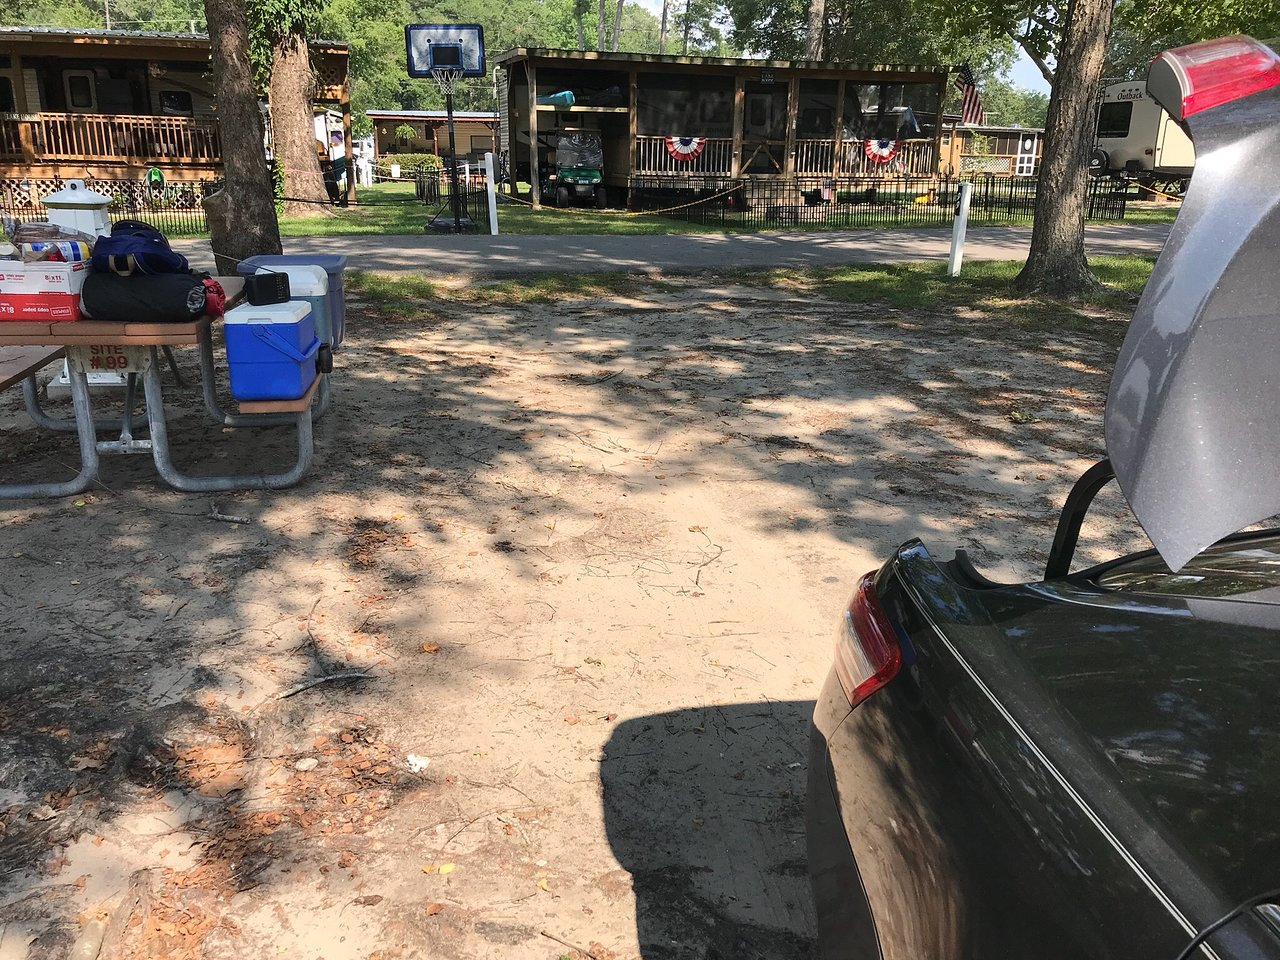 CAMP CLEARWATER Campground Reviews